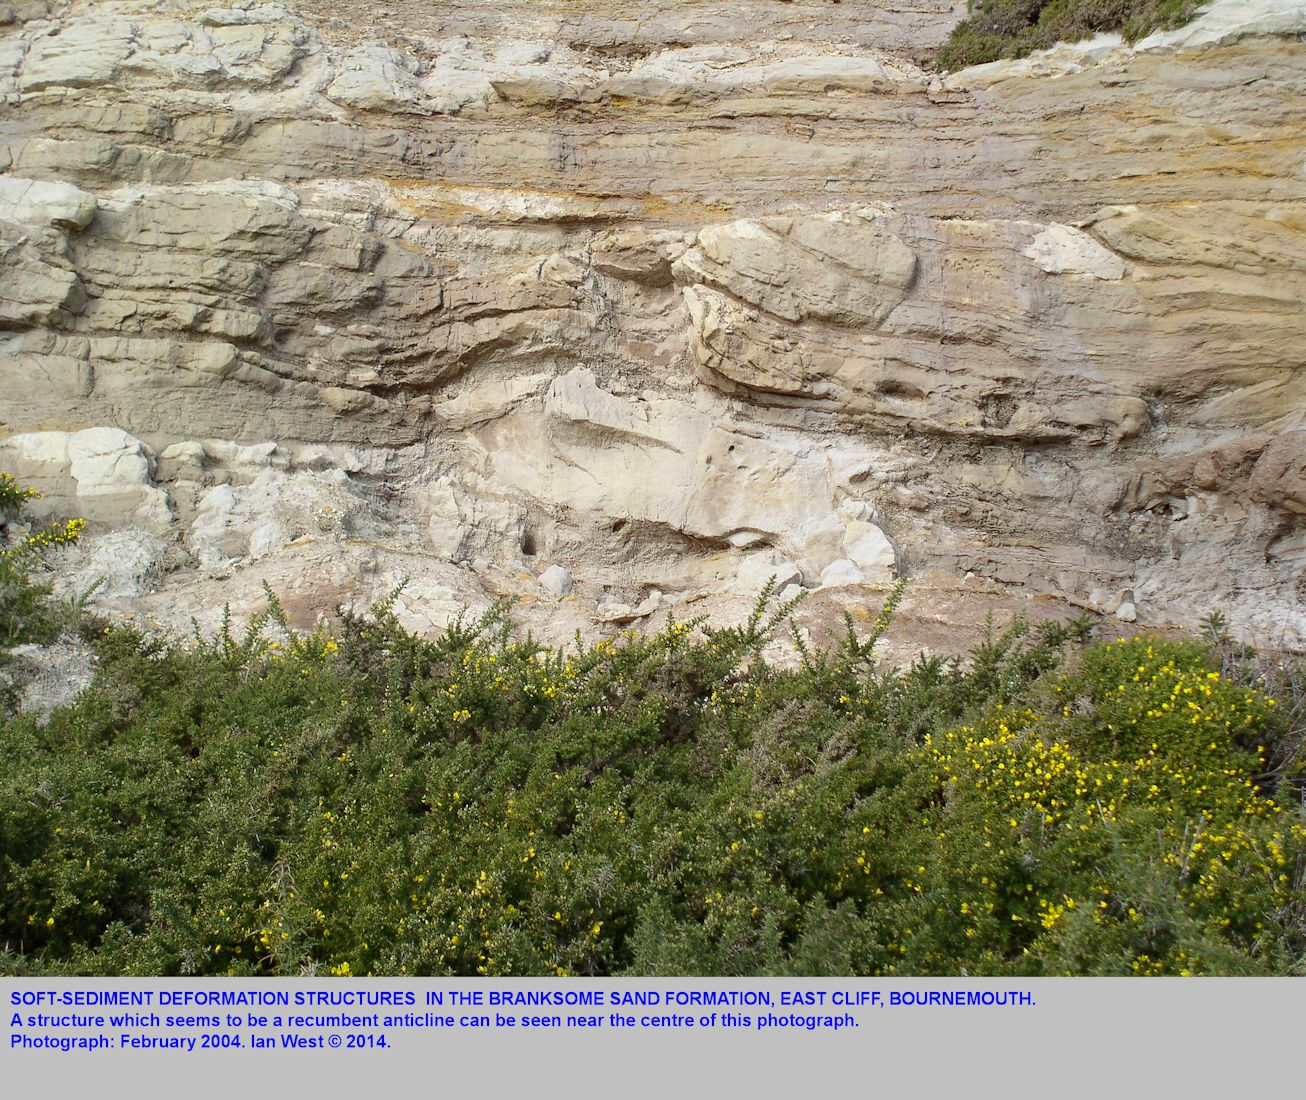 A recumbent anticline, one of the soft-sediment deformation structures in the high Branksome Sand Formation (Bournemouth Marine Beds, East Cliff, Bournemouth, Dorset, photographed in 2004